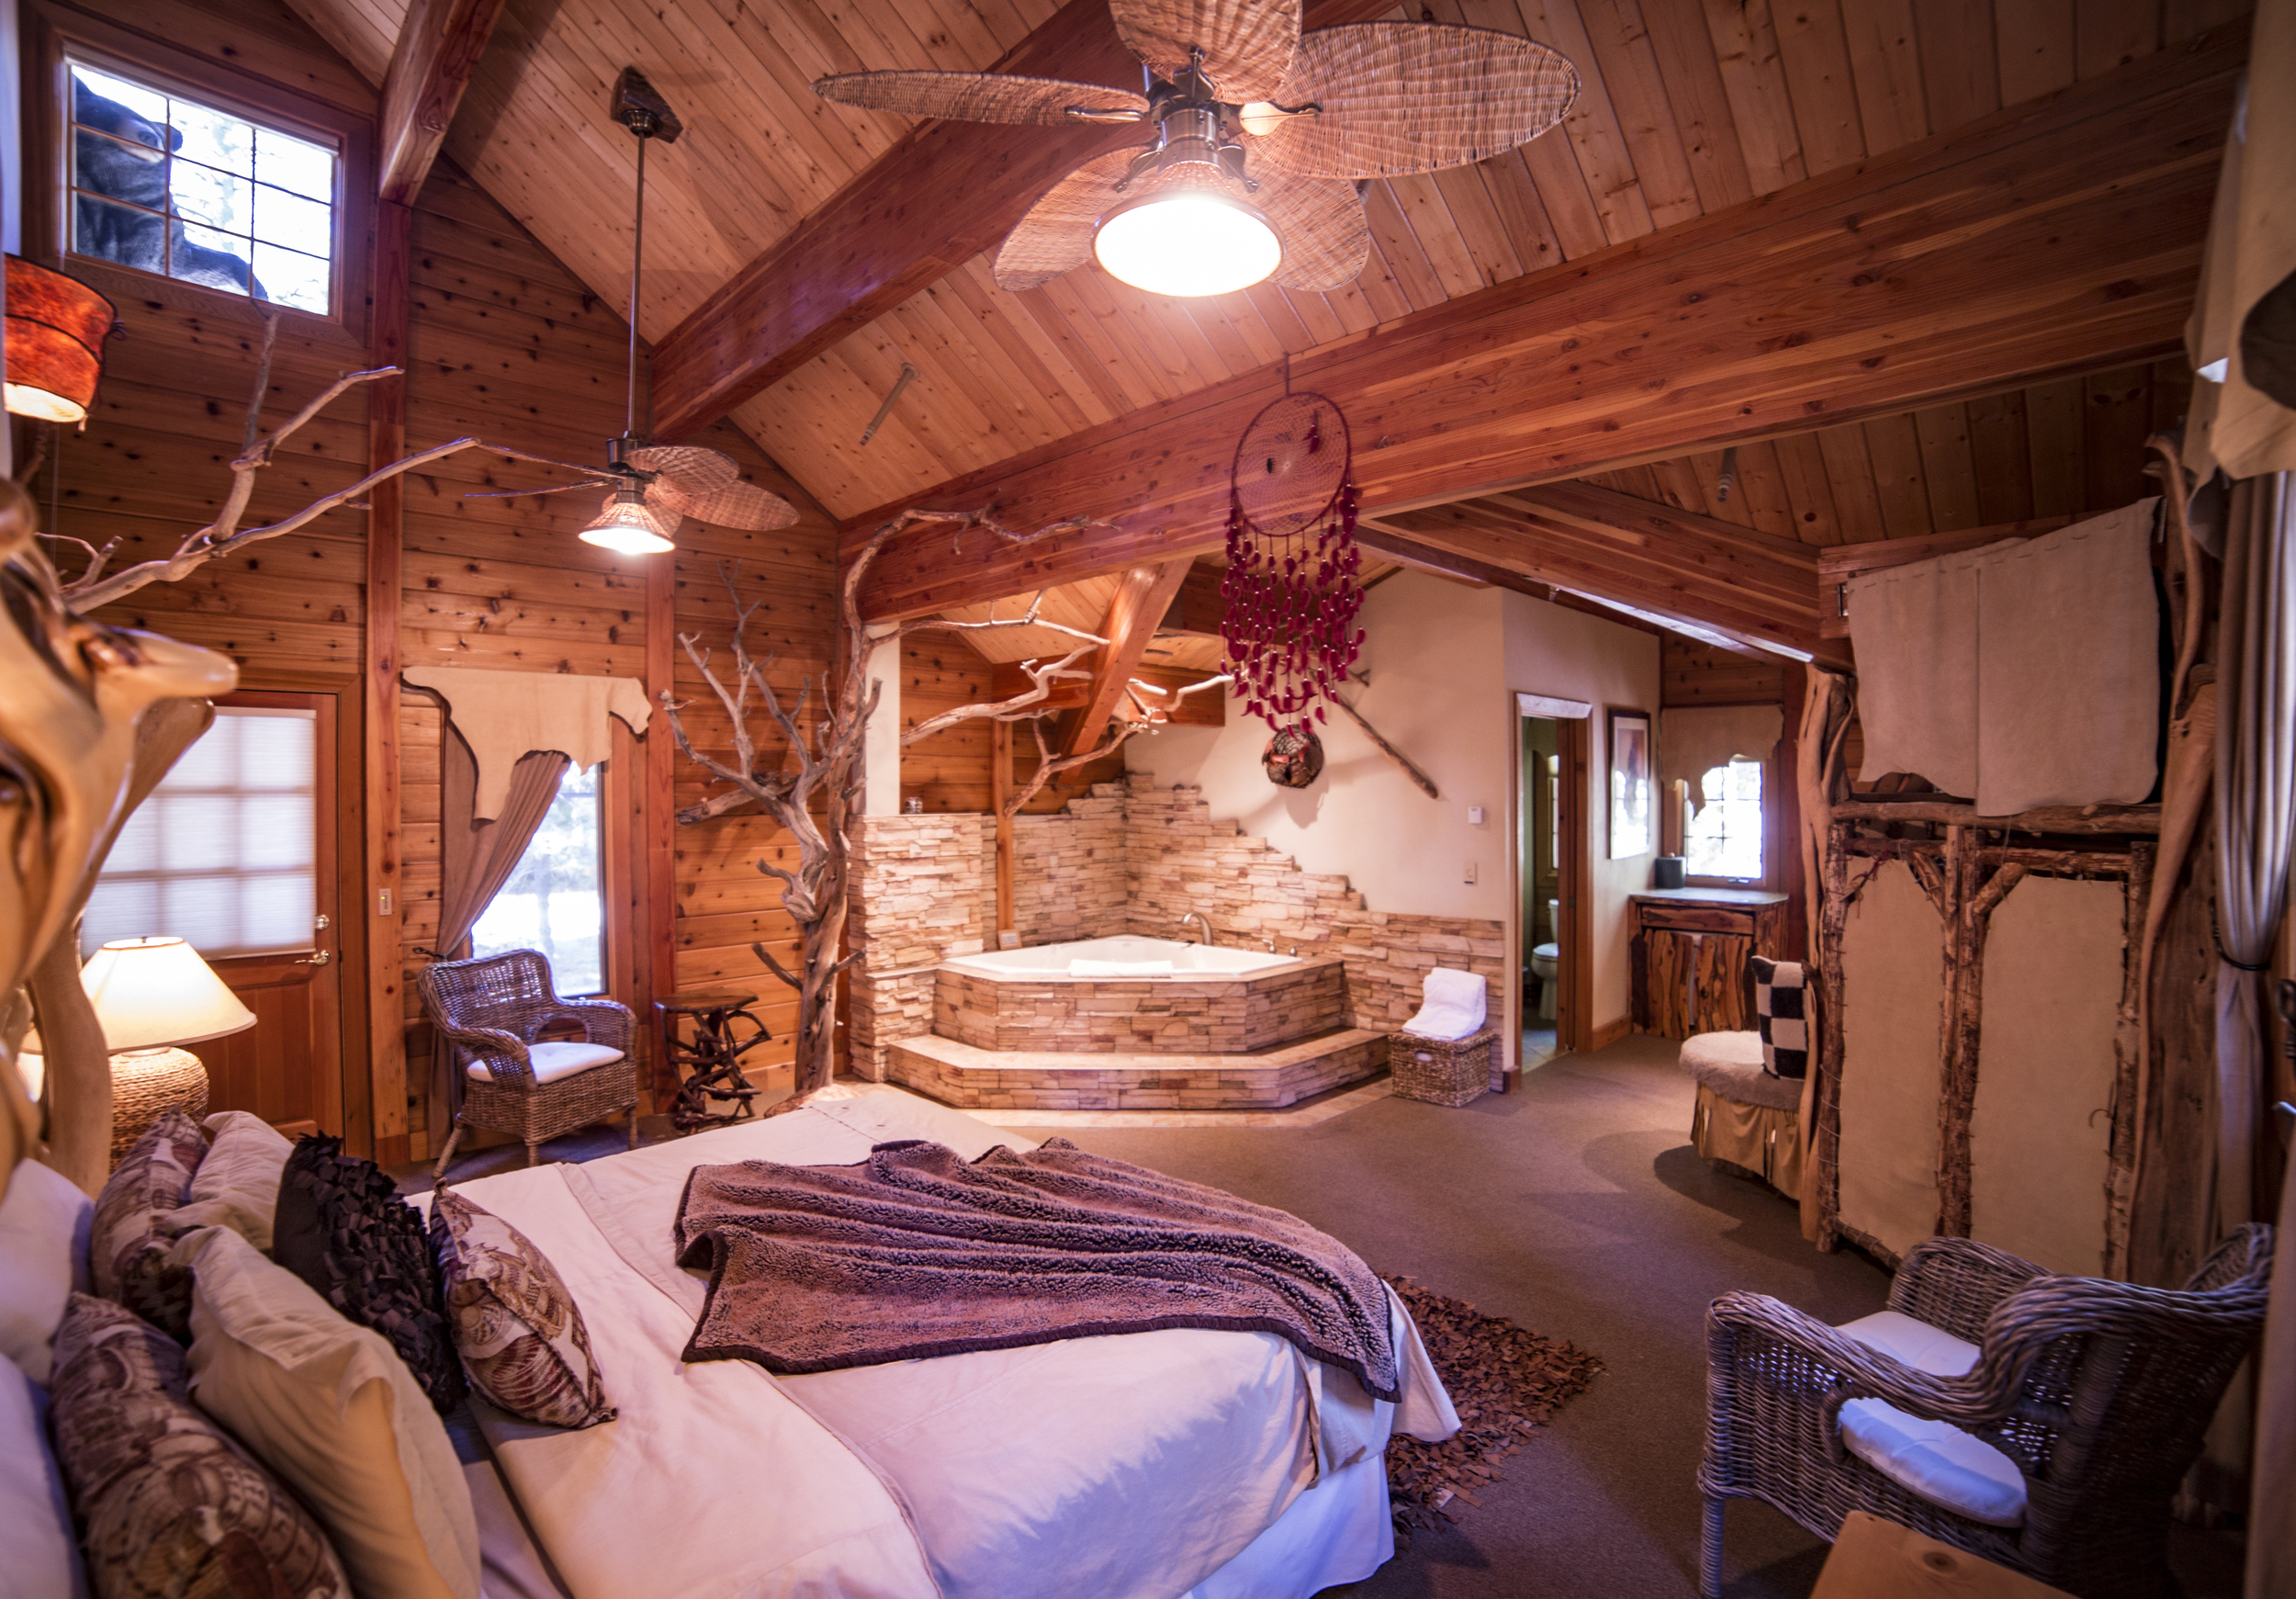 An image of one of the Cottage Inn decorated rooms